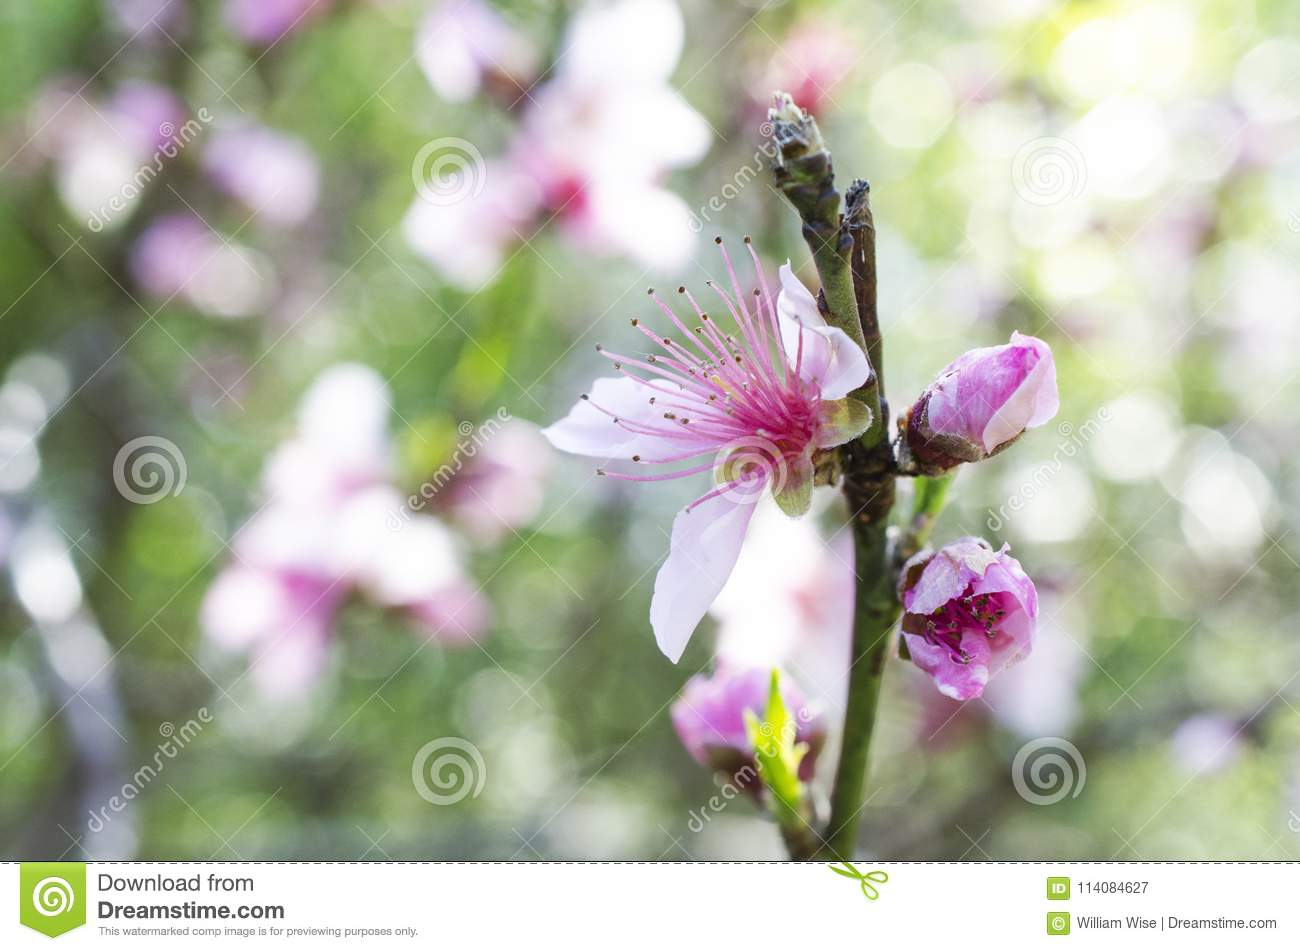 Cherry tree flowers cherry blossom festival georgia usa stock download cherry tree flowers cherry blossom festival georgia usa stock image image of mightylinksfo